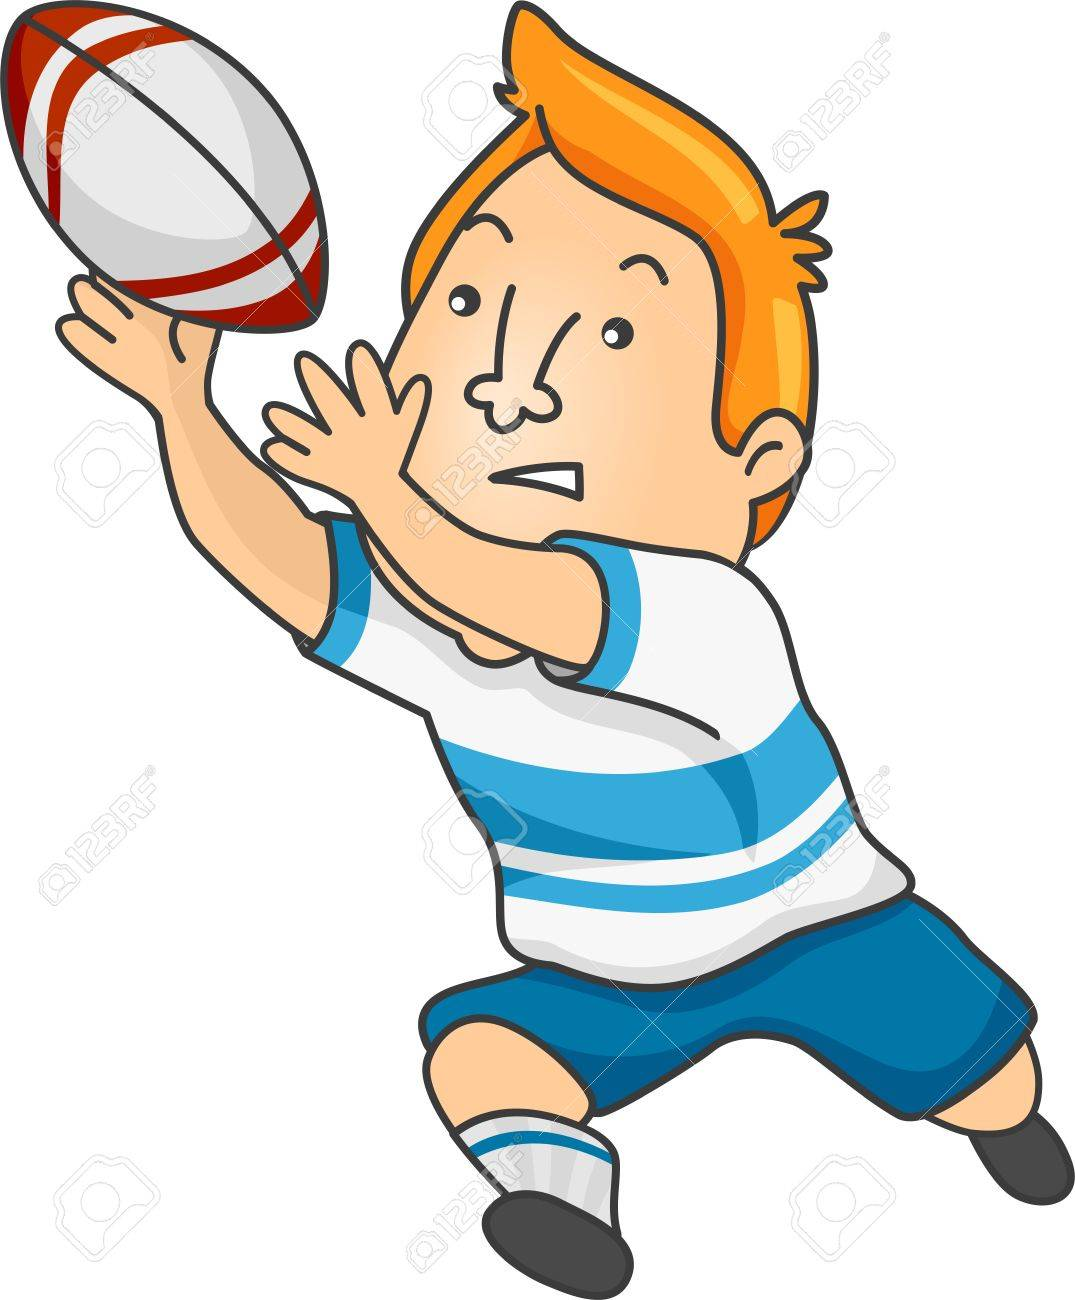 illustration of a rugby player catching a rugby ball royalty free rh 123rf com rugby clip art free rugby clipart png